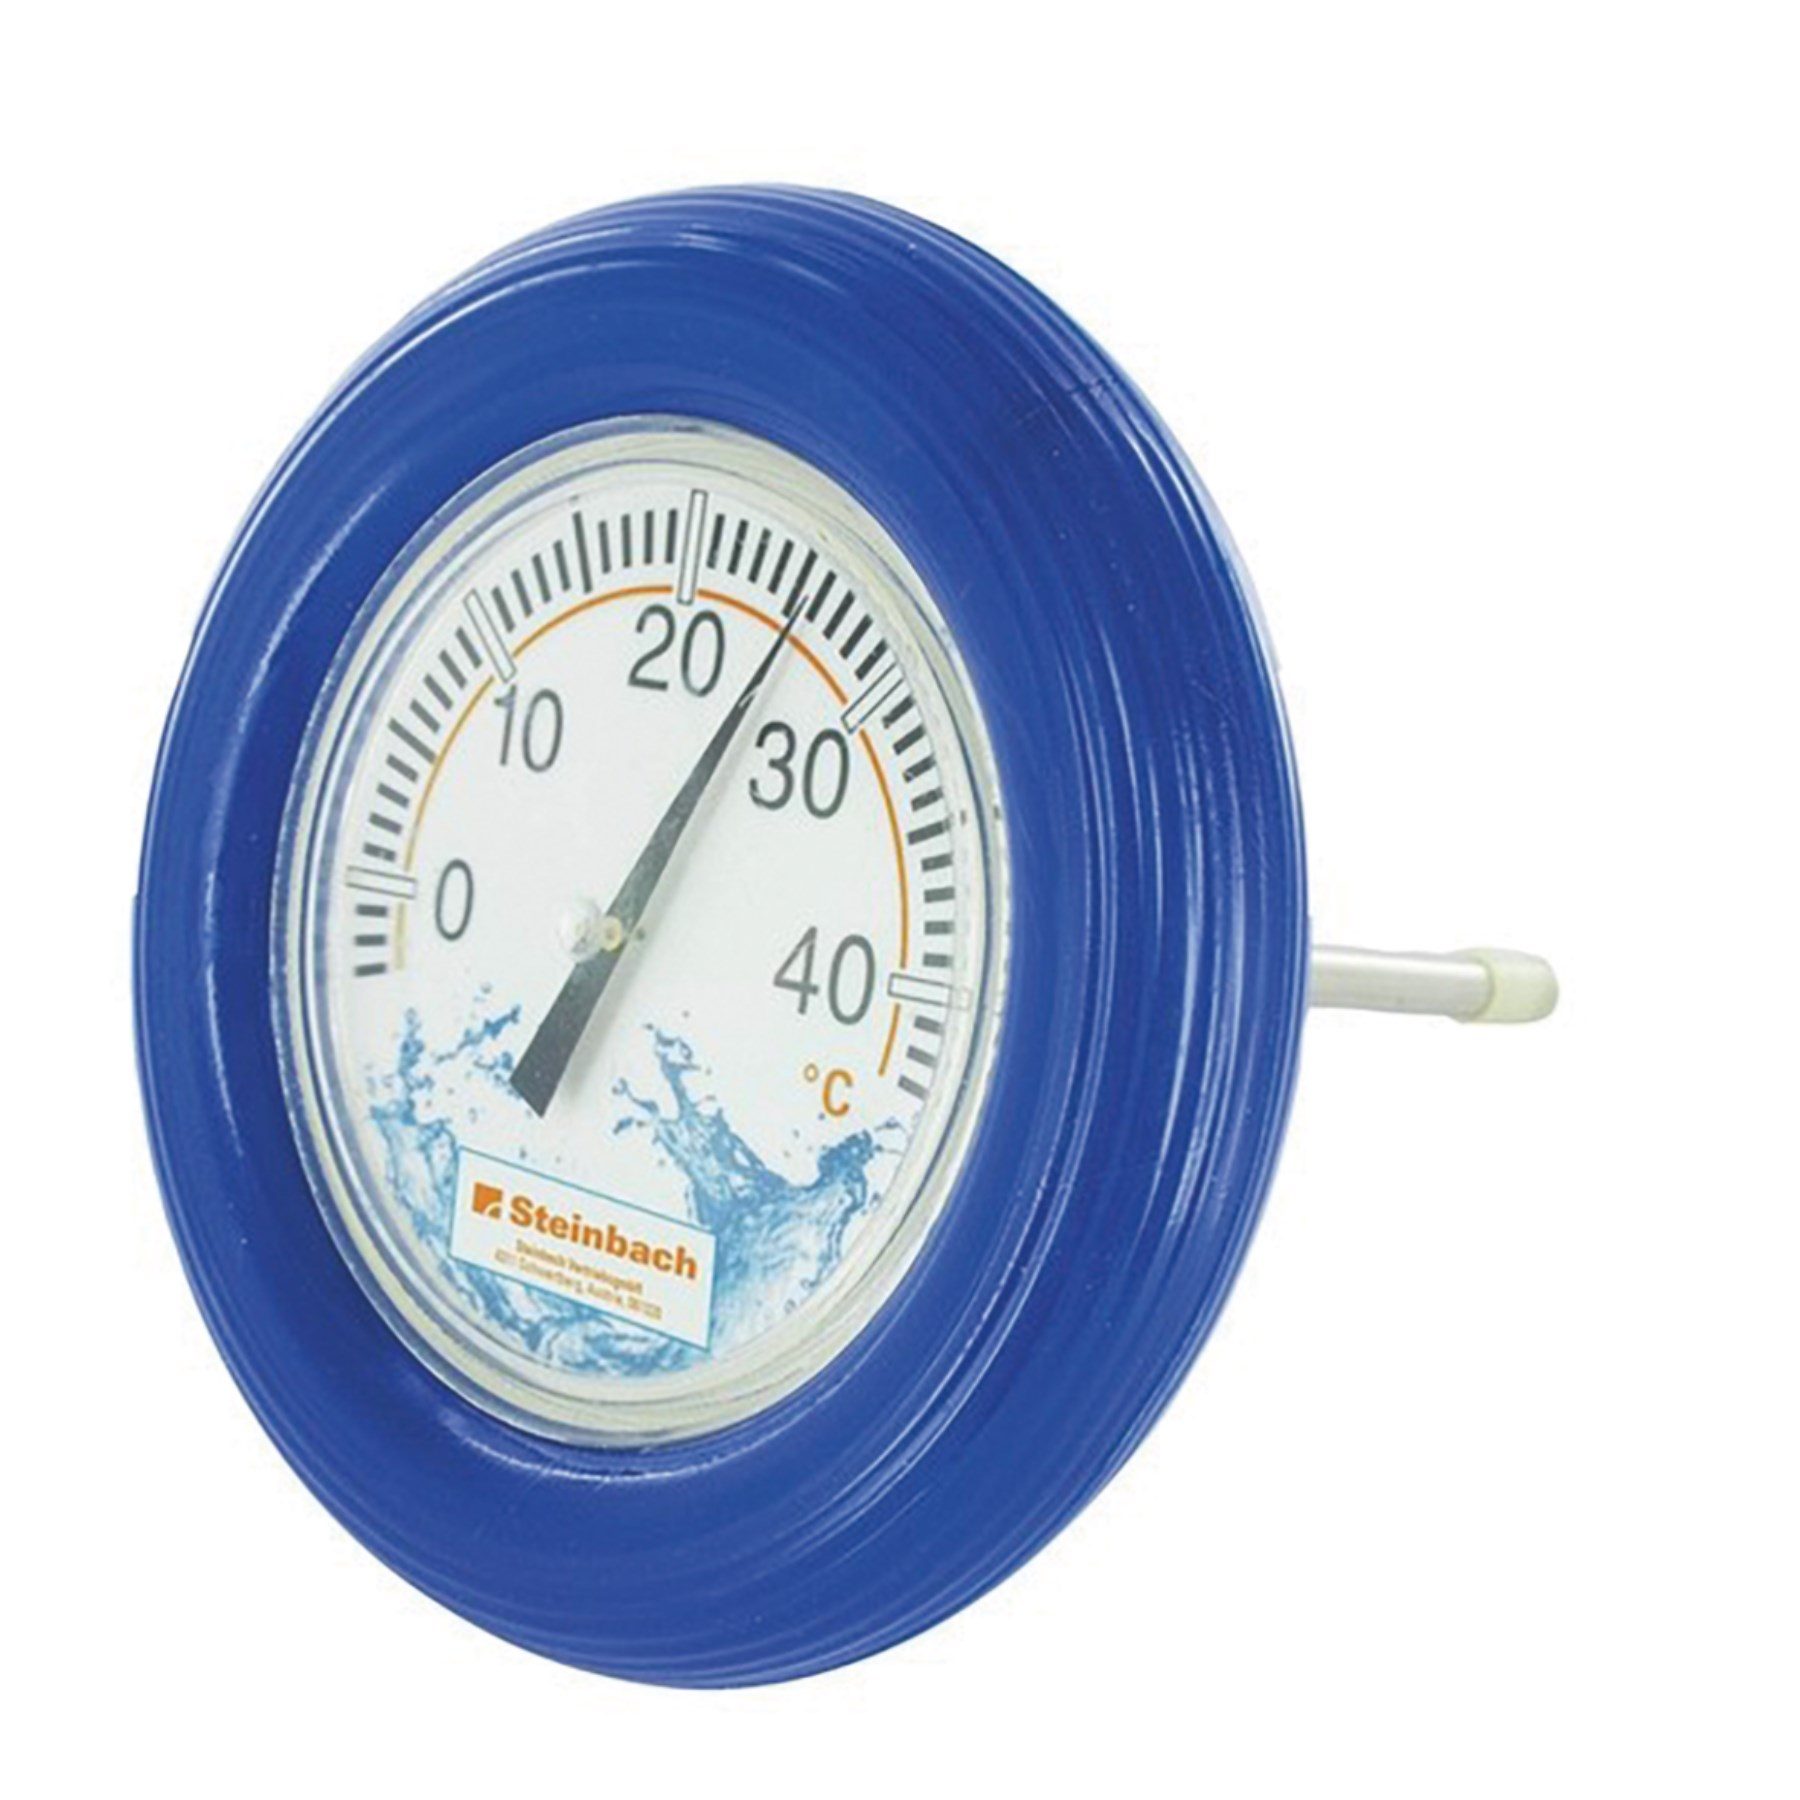 1184861 - Thermometer mit Schwimmring